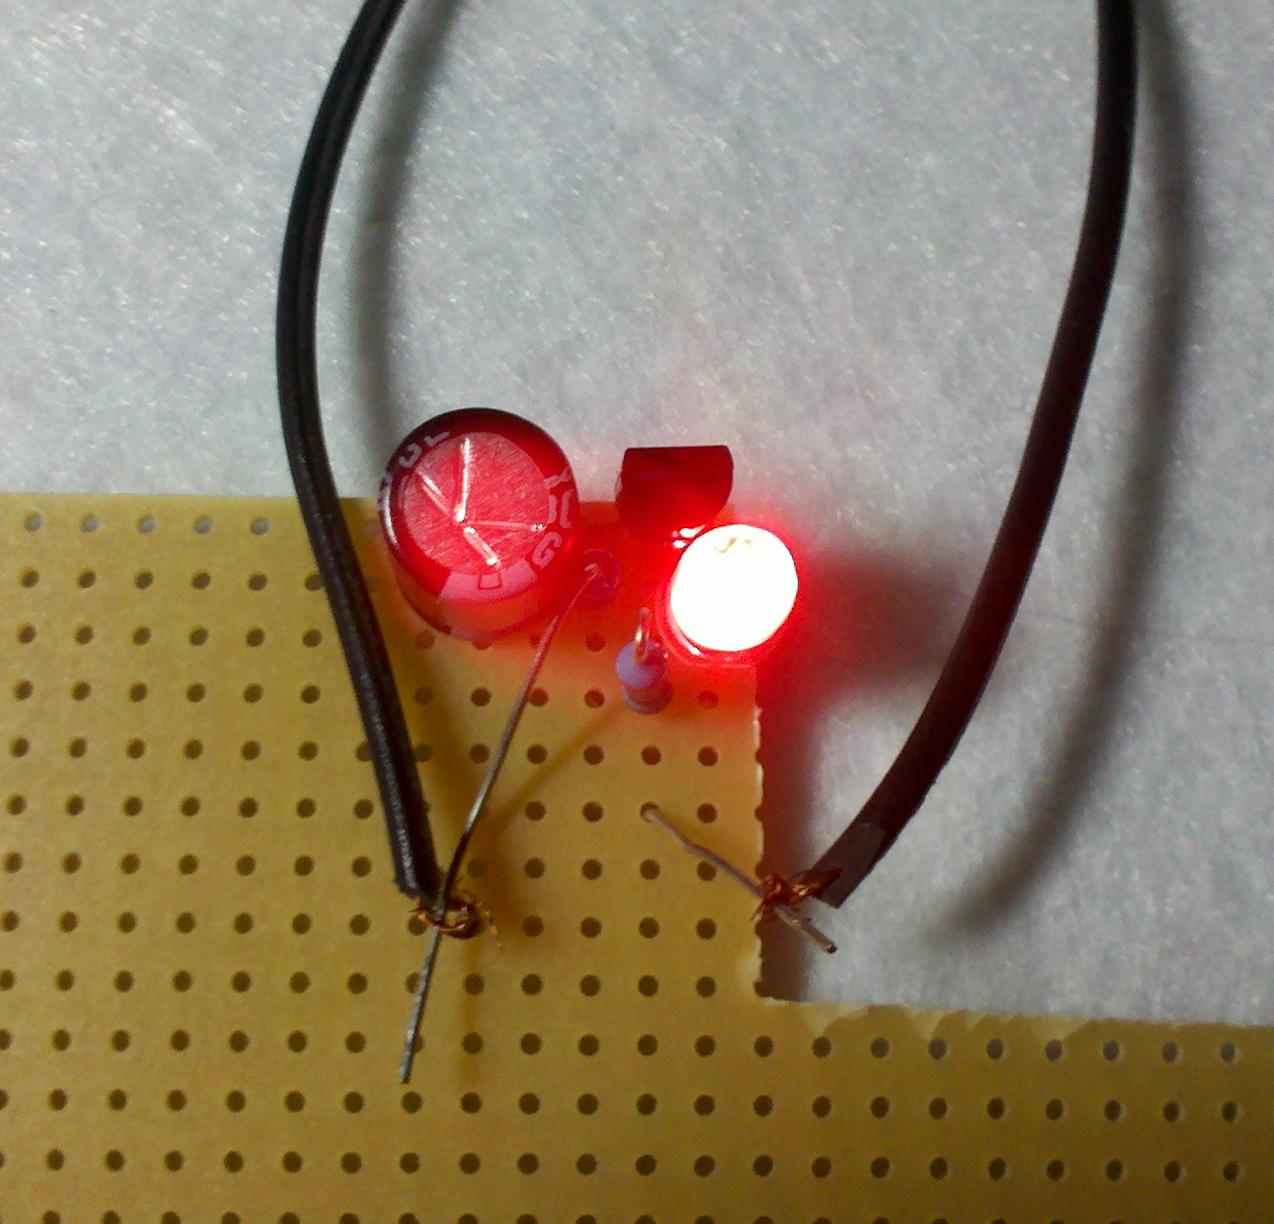 Build Led Flasher Simple Circuits Do It Yourself Gadgets Flashing Circuit Sponsored 1274x1224